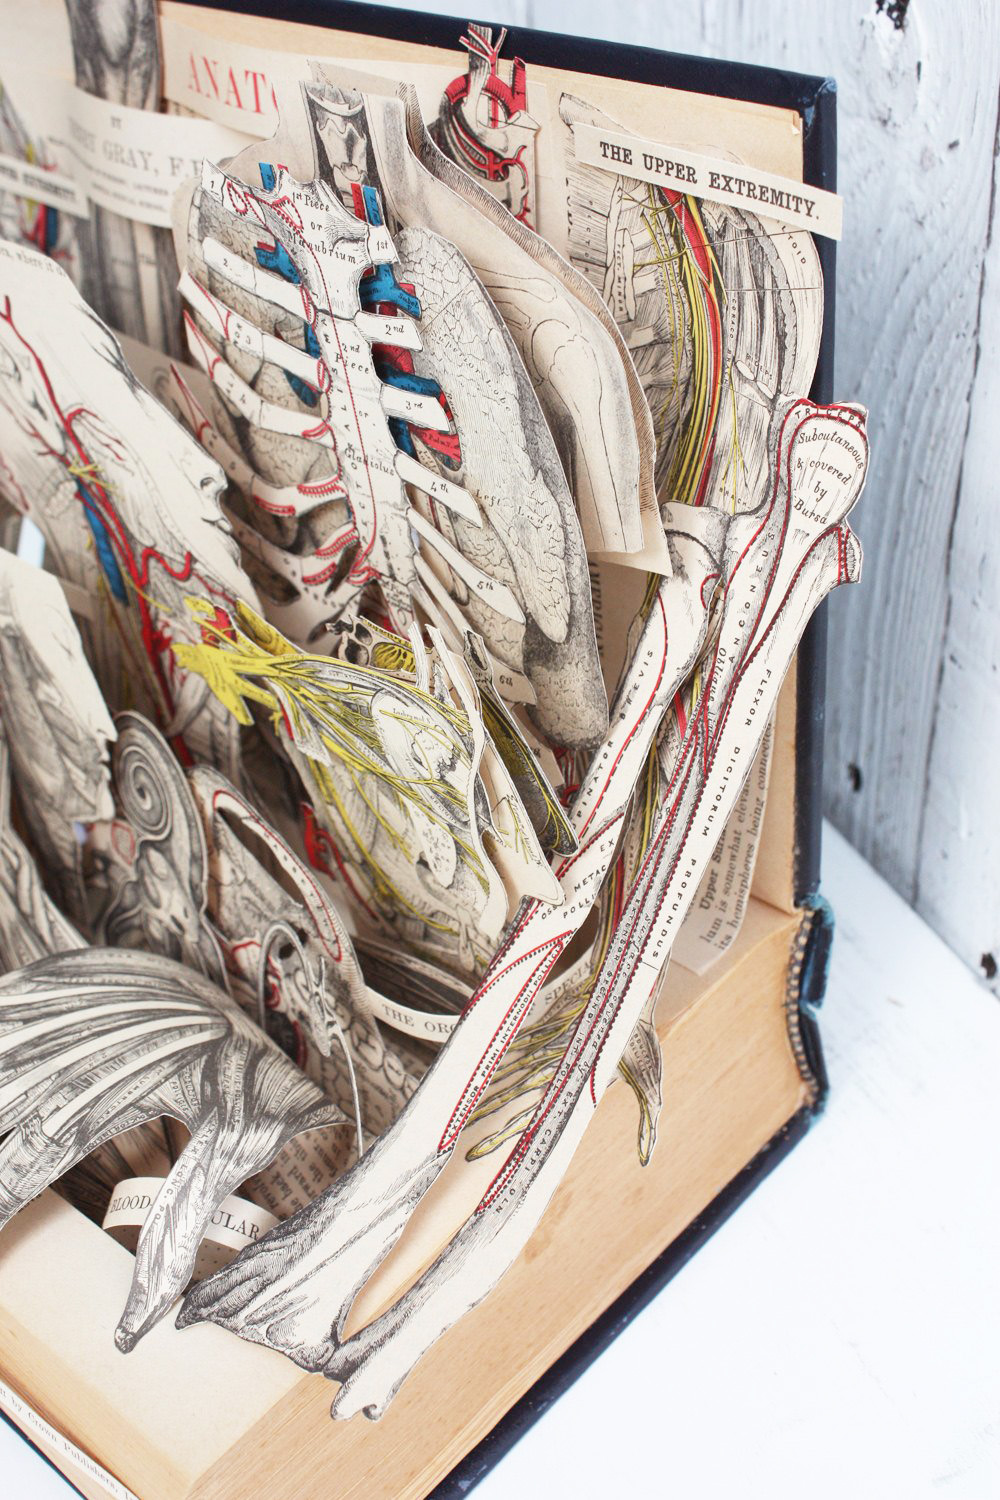 grays-anatomy-book-sculpture-02x.jpg